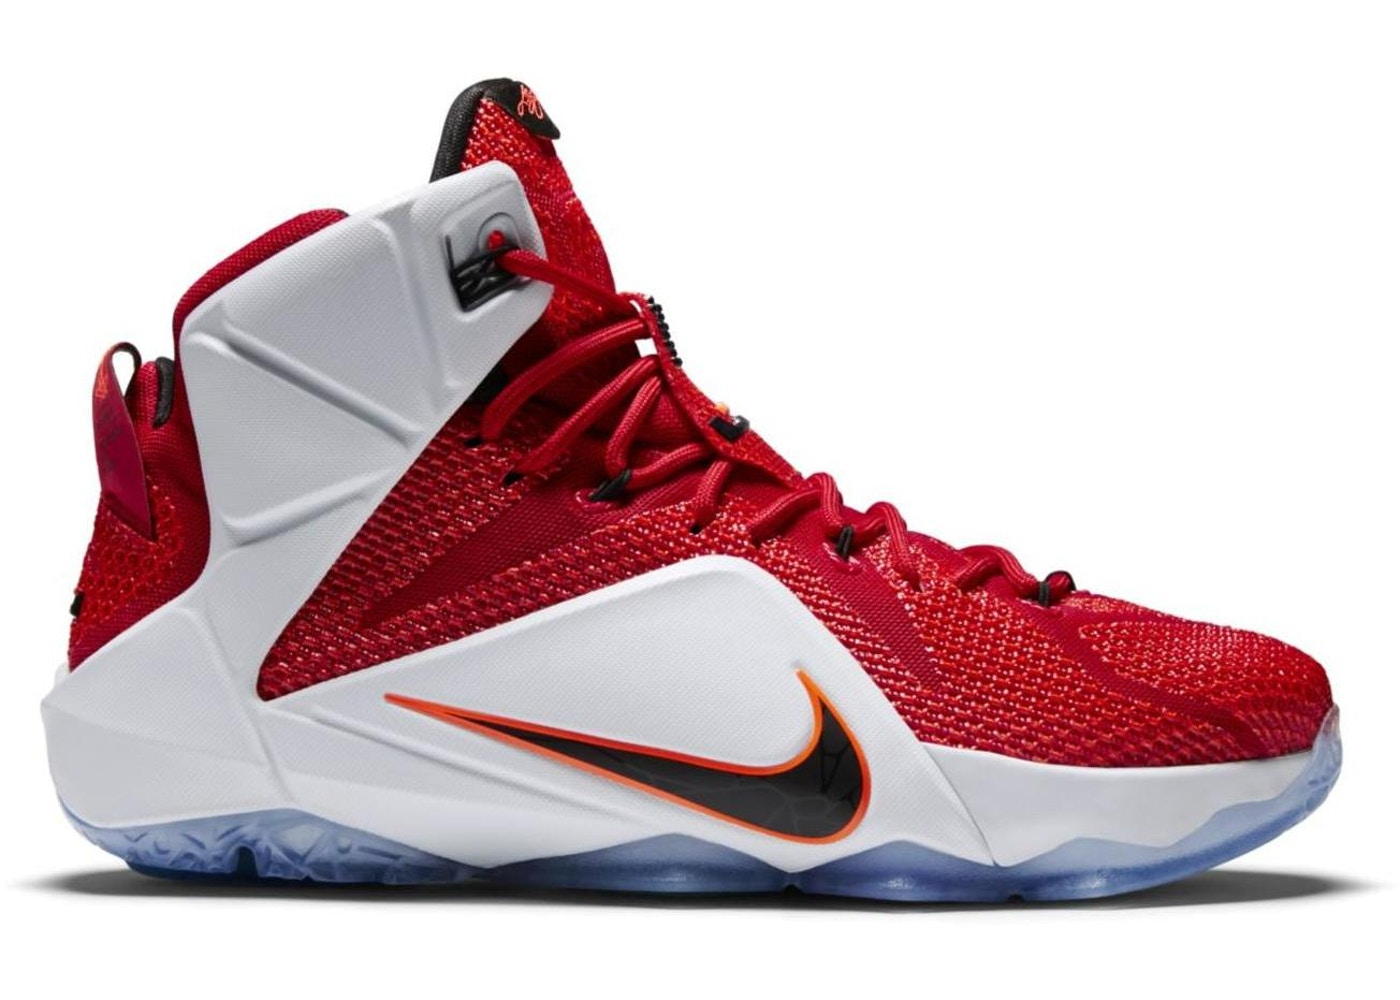 new styles 44e70 a38ef LeBron 12 Heart of a Lion - 684593-601